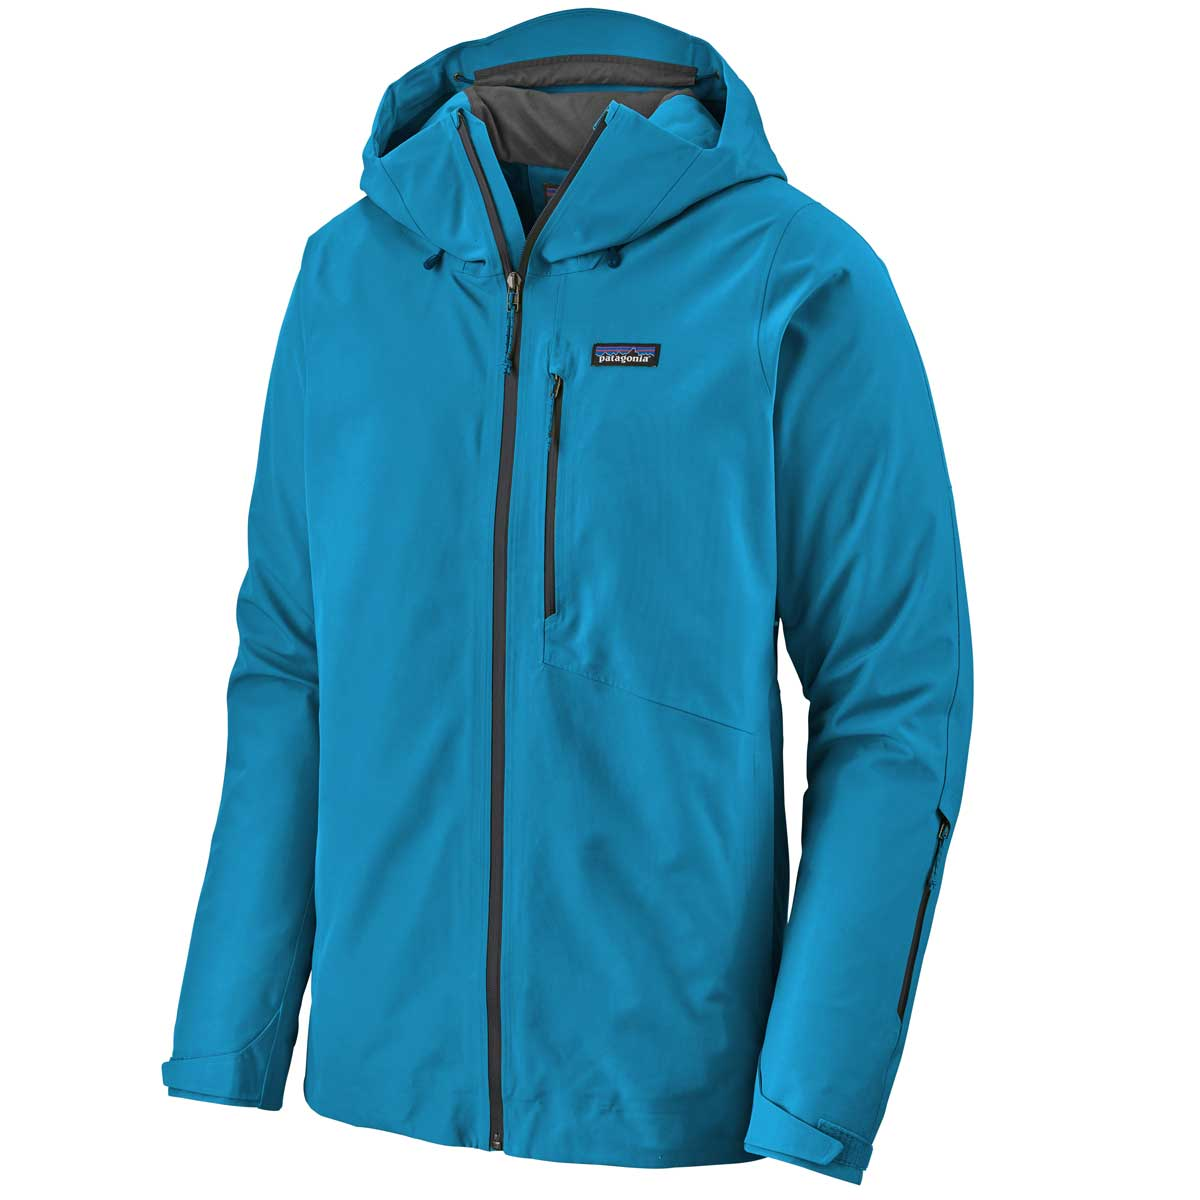 Patagonia men's Powder Bowl Jacket in Balkan Blue front view